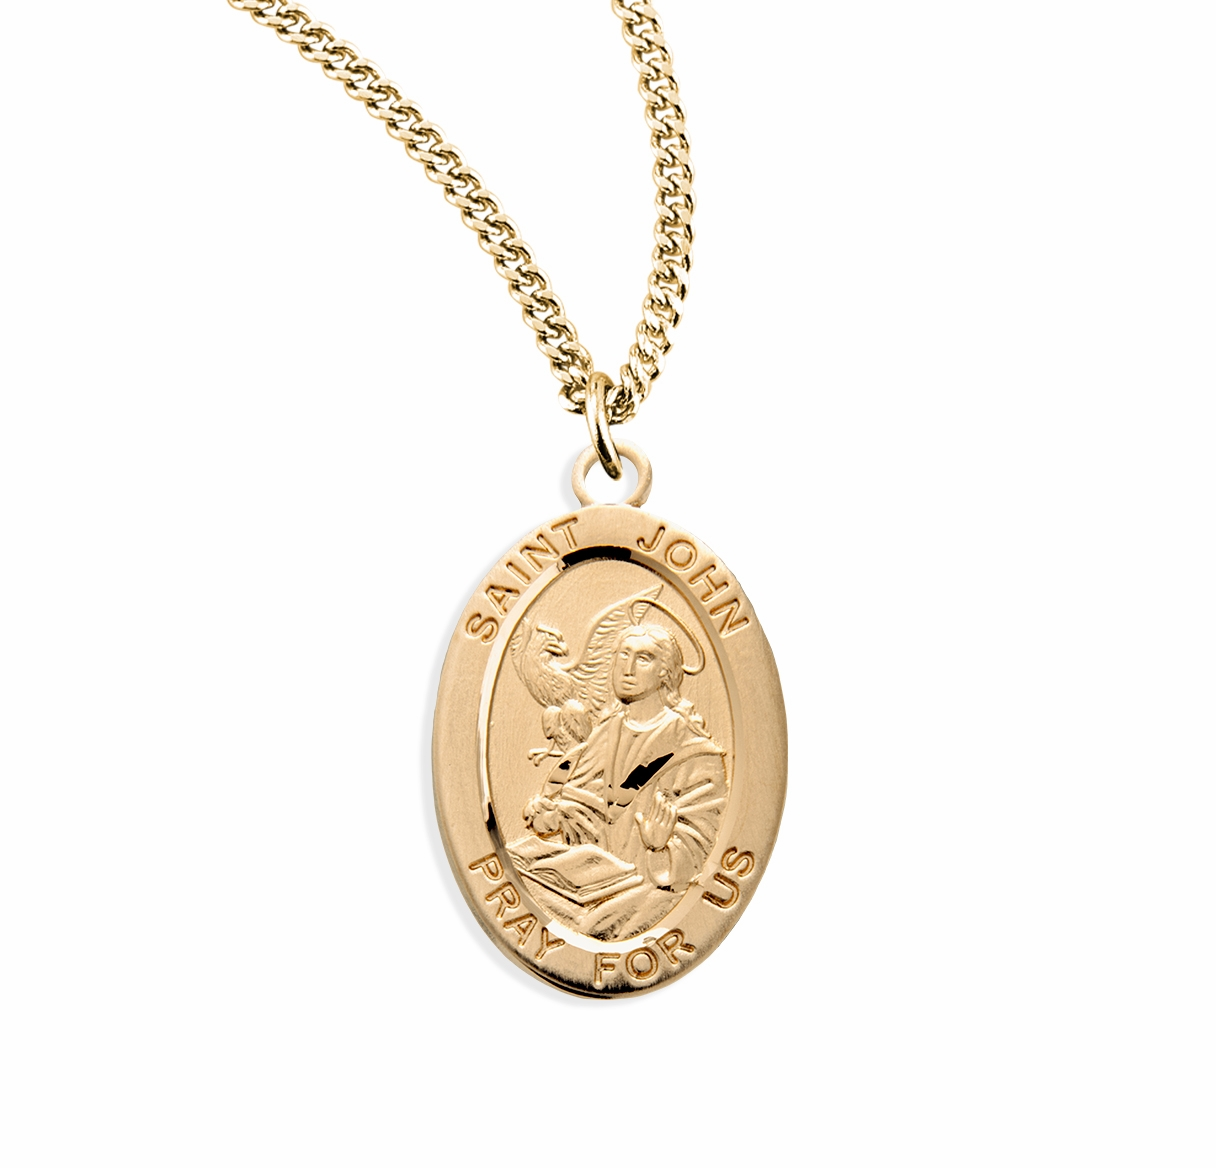 HMH Religious St John the Evangelist Oval Gold over Sterling Medal Necklace